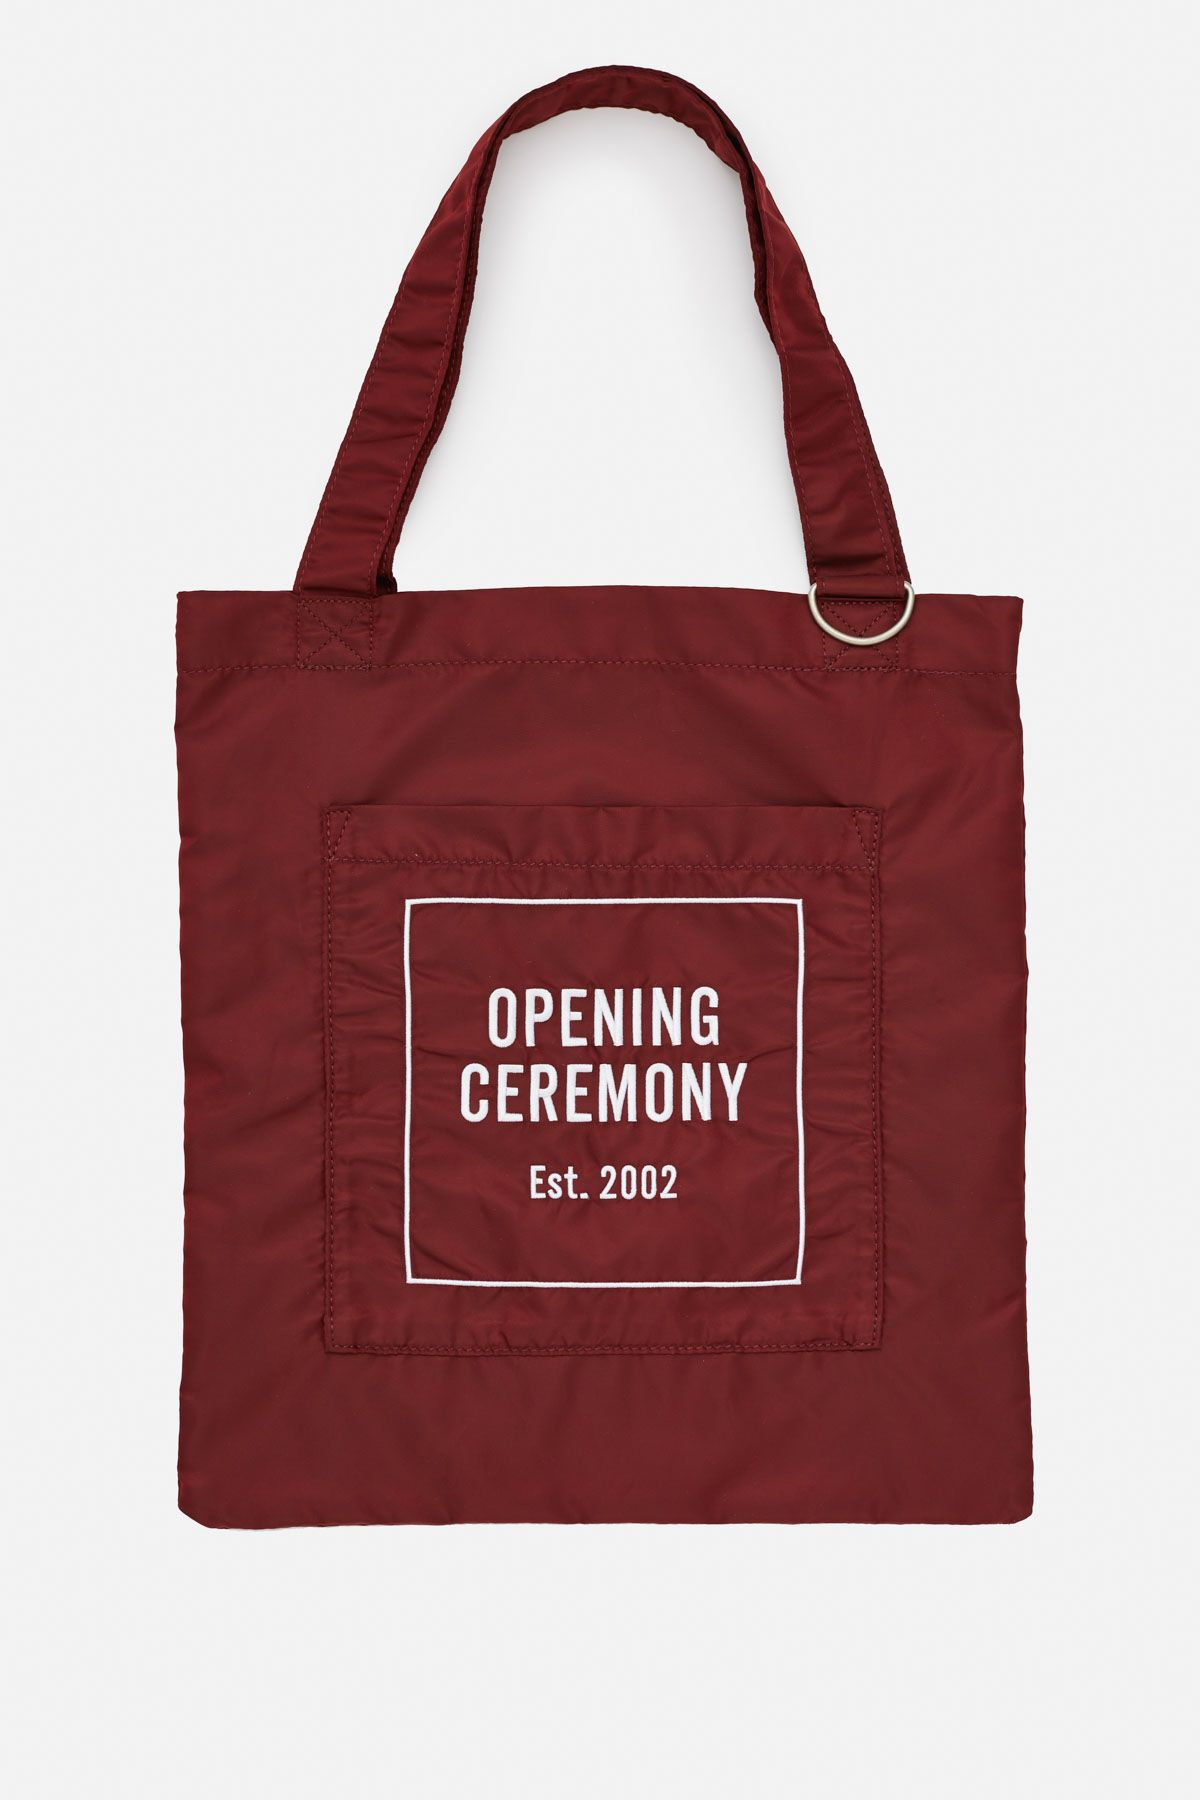 Opening Ceremony Eco Tote Bag.